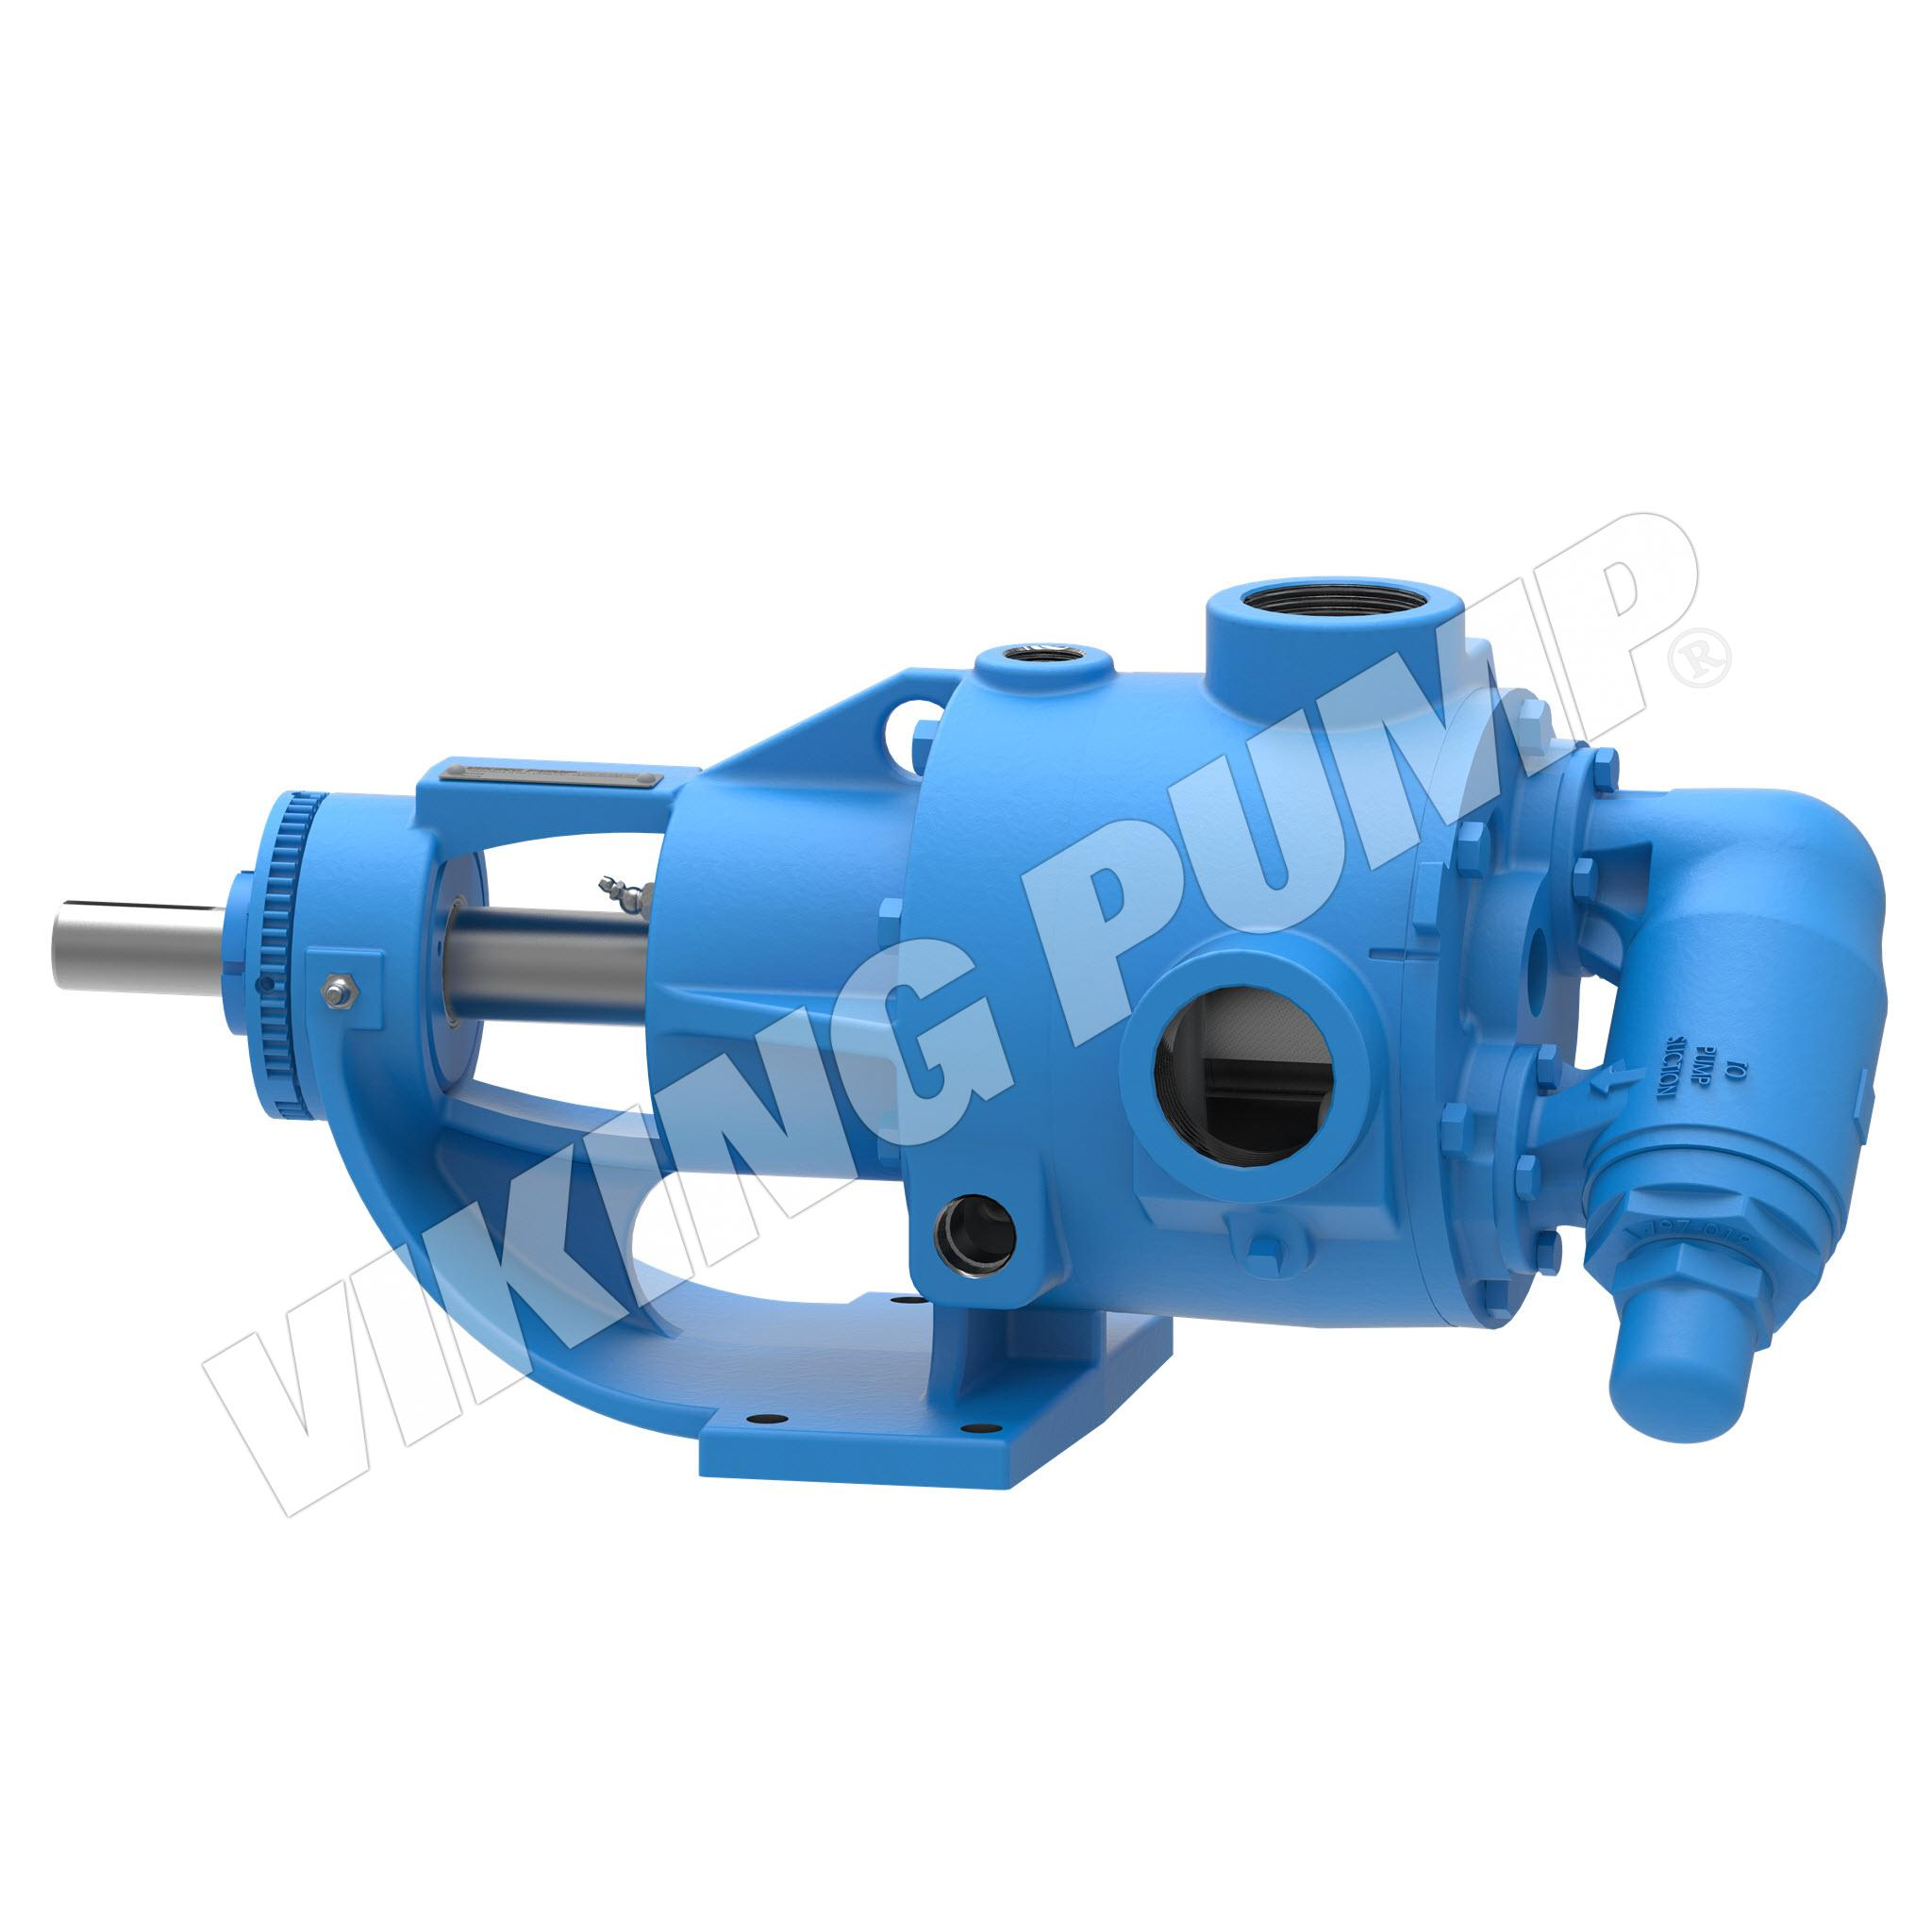 Model KK4724, Foot-Mounted, Mechanical Seal, Relief Valve Pump